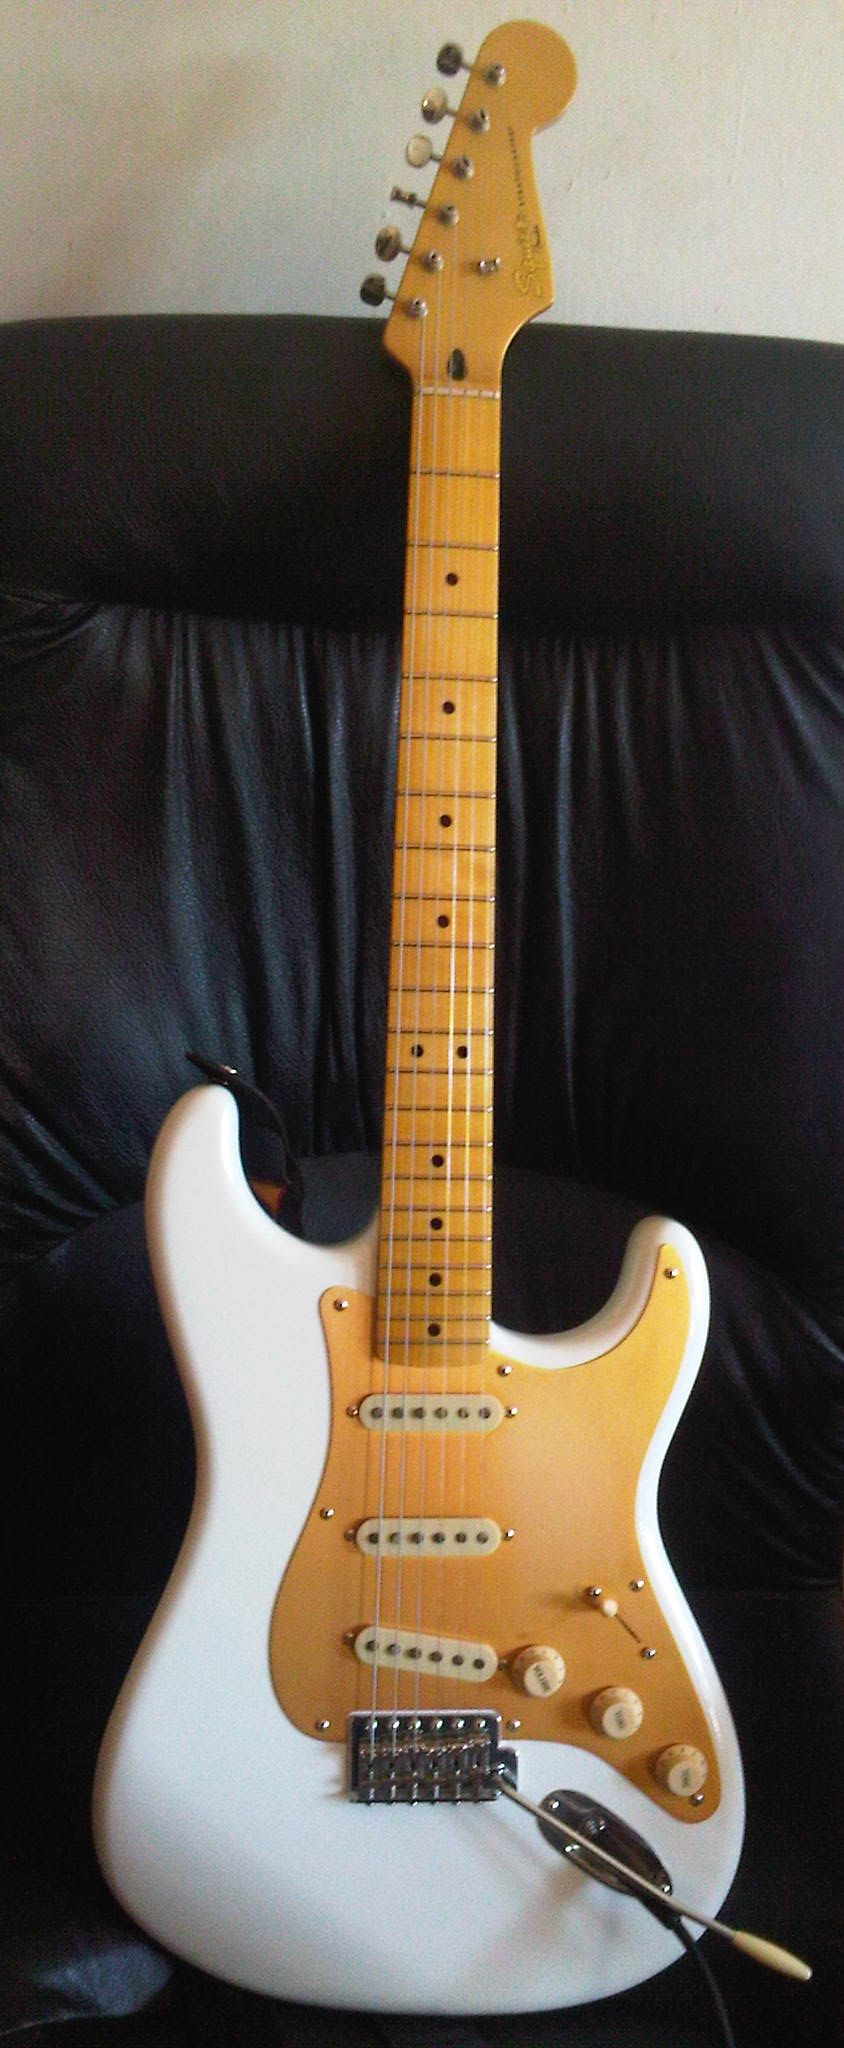 2009 squier classic vibe 50 39 s stratocaster in olympic white w gold anodized pickguard guitars. Black Bedroom Furniture Sets. Home Design Ideas